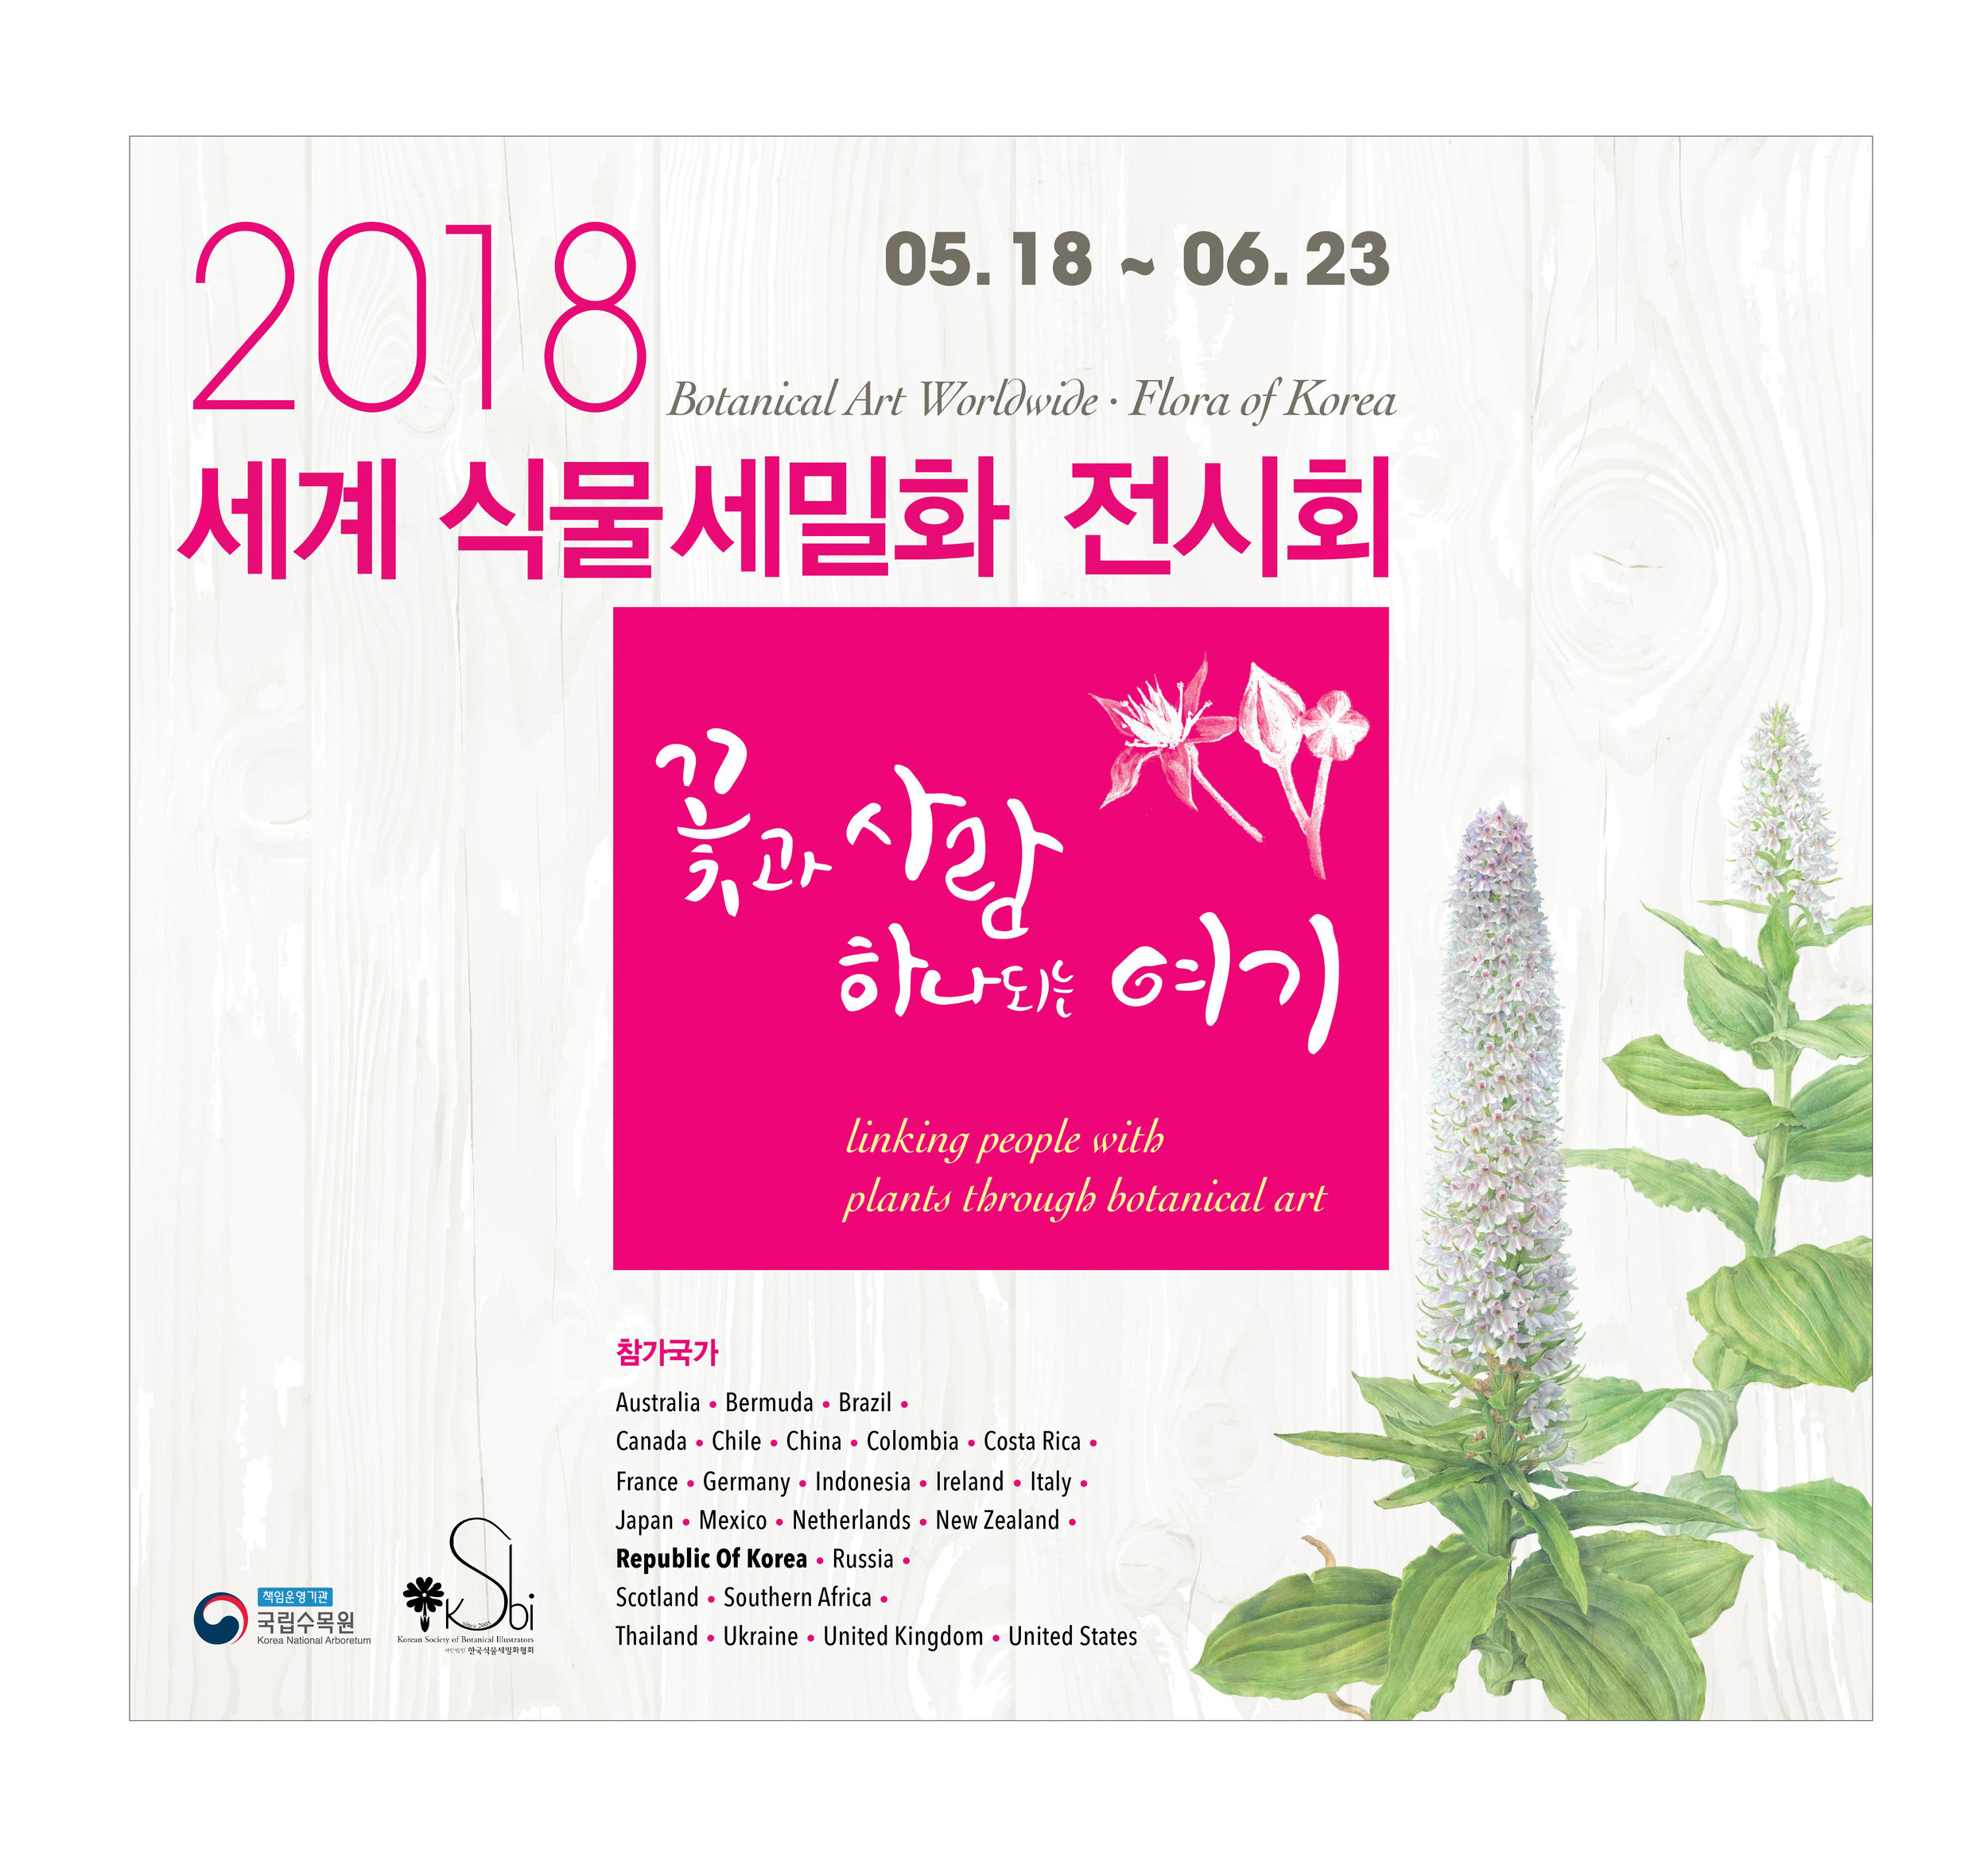 The poster for Flora of Korea